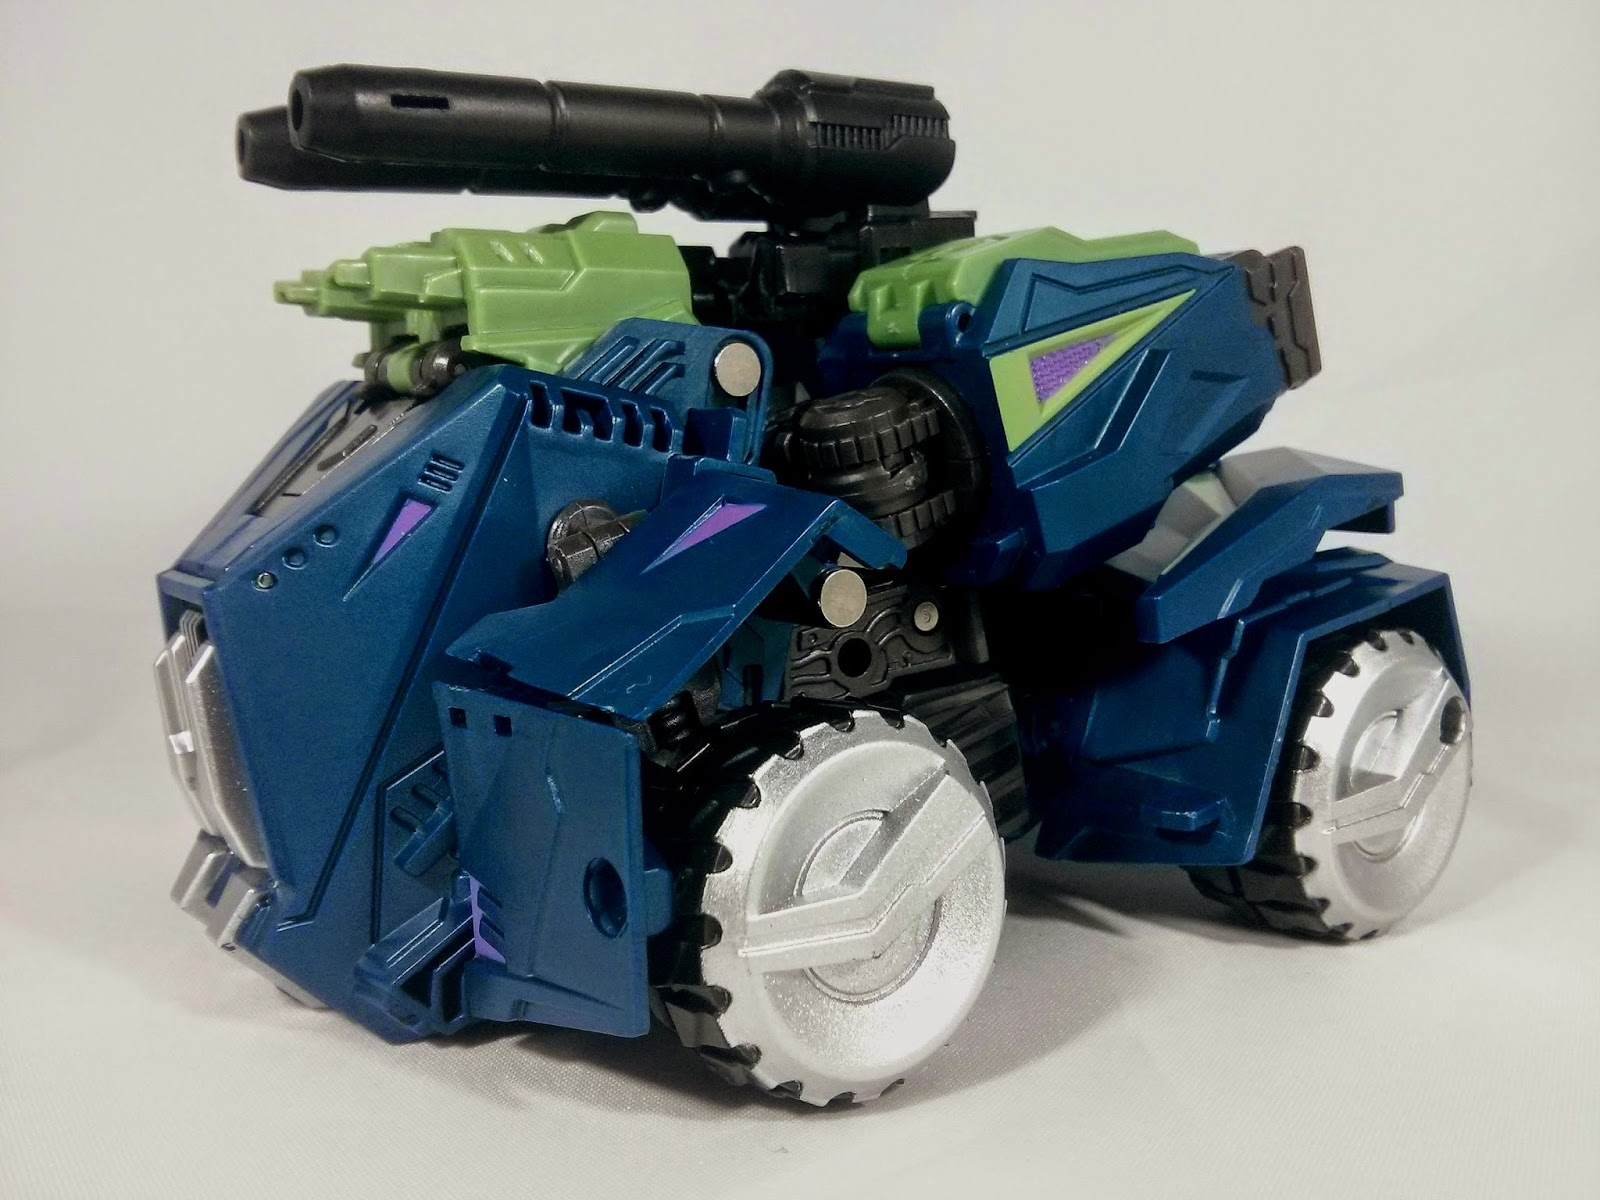 microblaze military titans onslaught vehicle